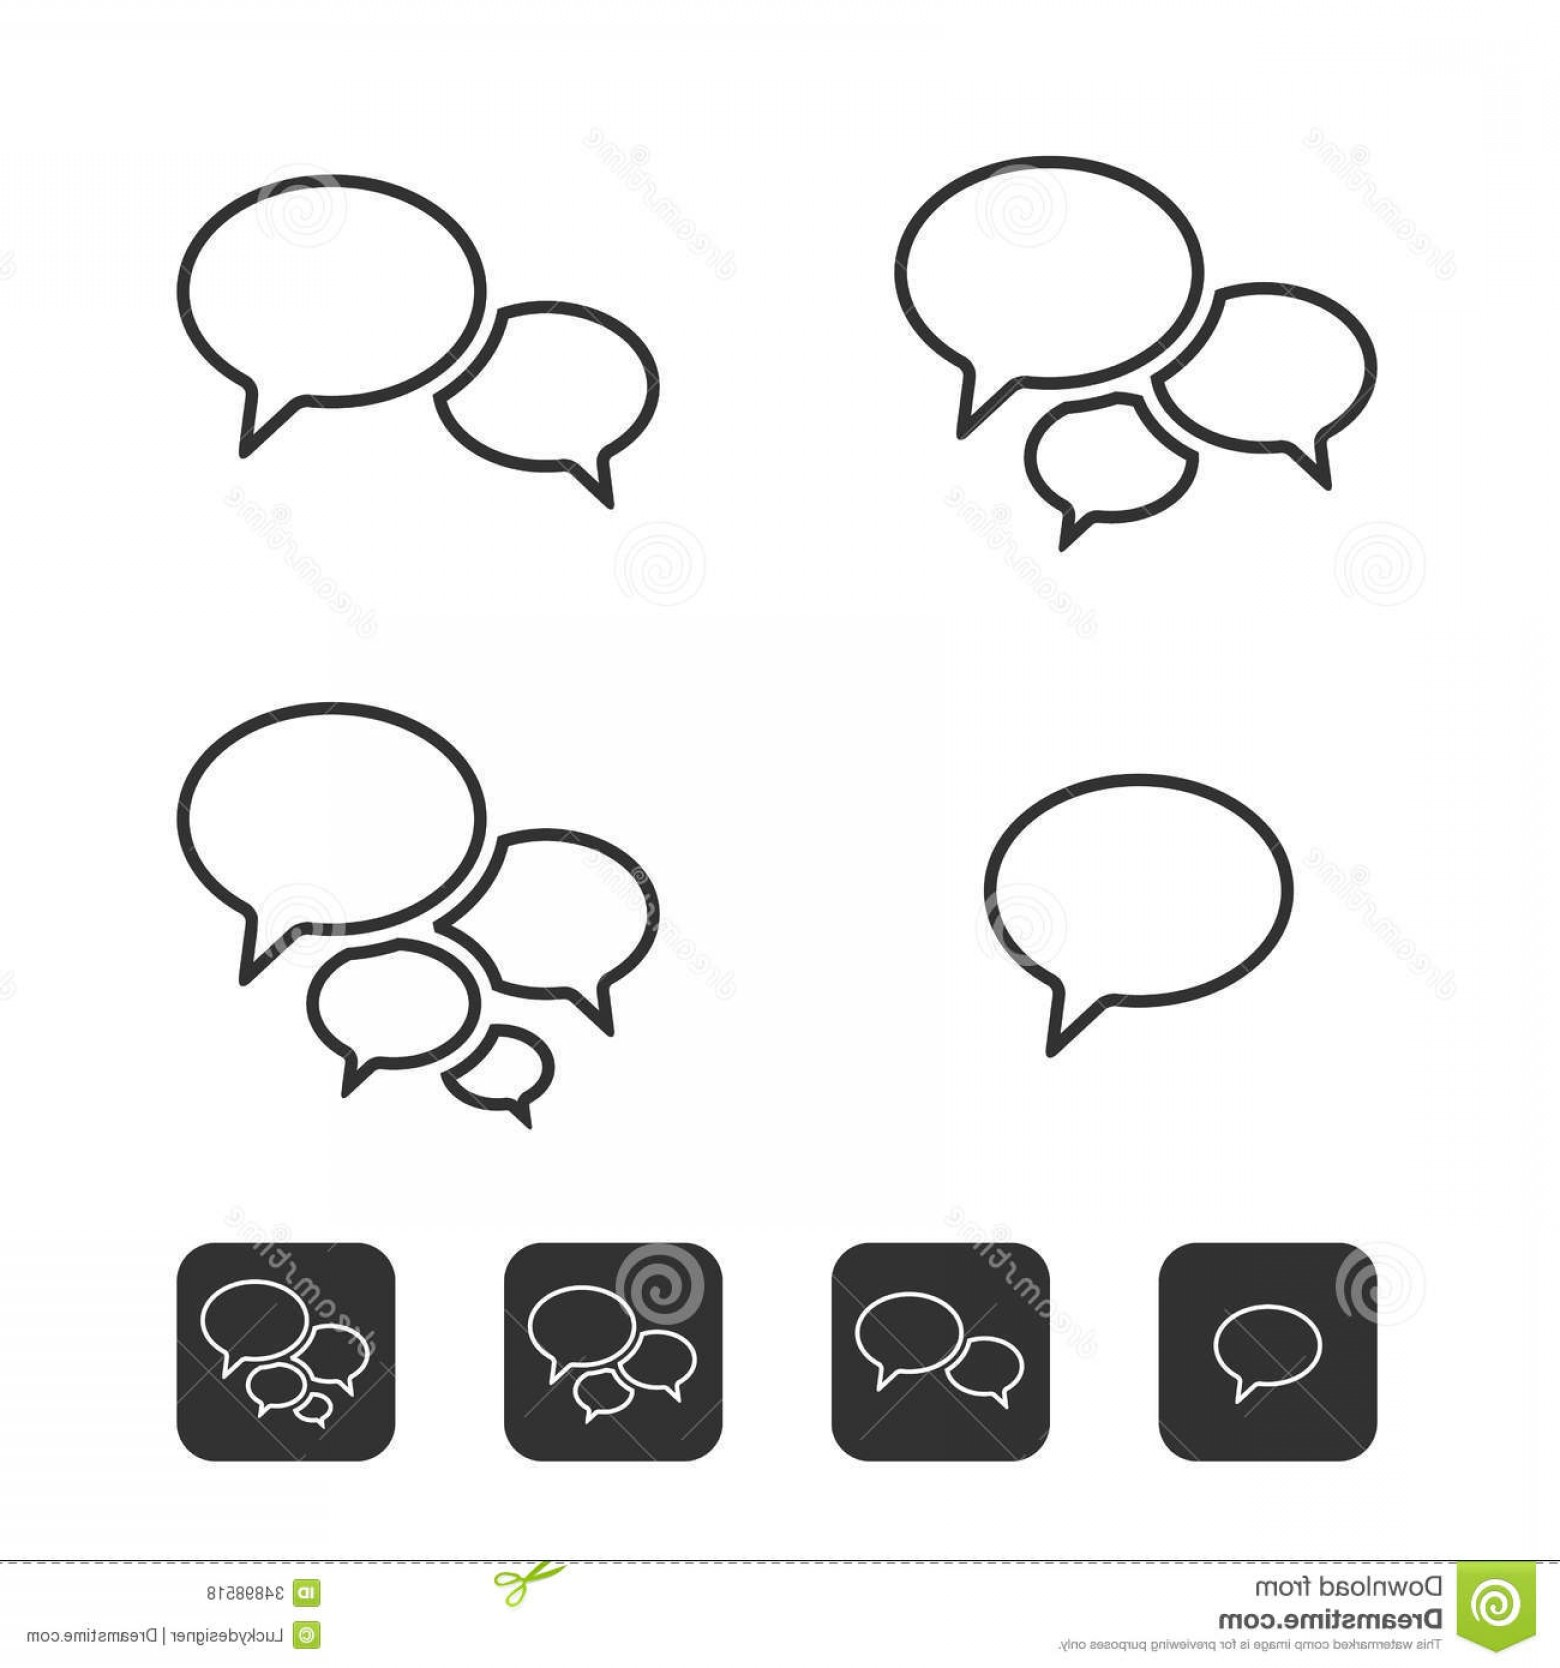 Speech Bubble Icon Vector: Royalty Free Stock Photos Trendy Thin Icons Speech Bubbles Set Vector Image